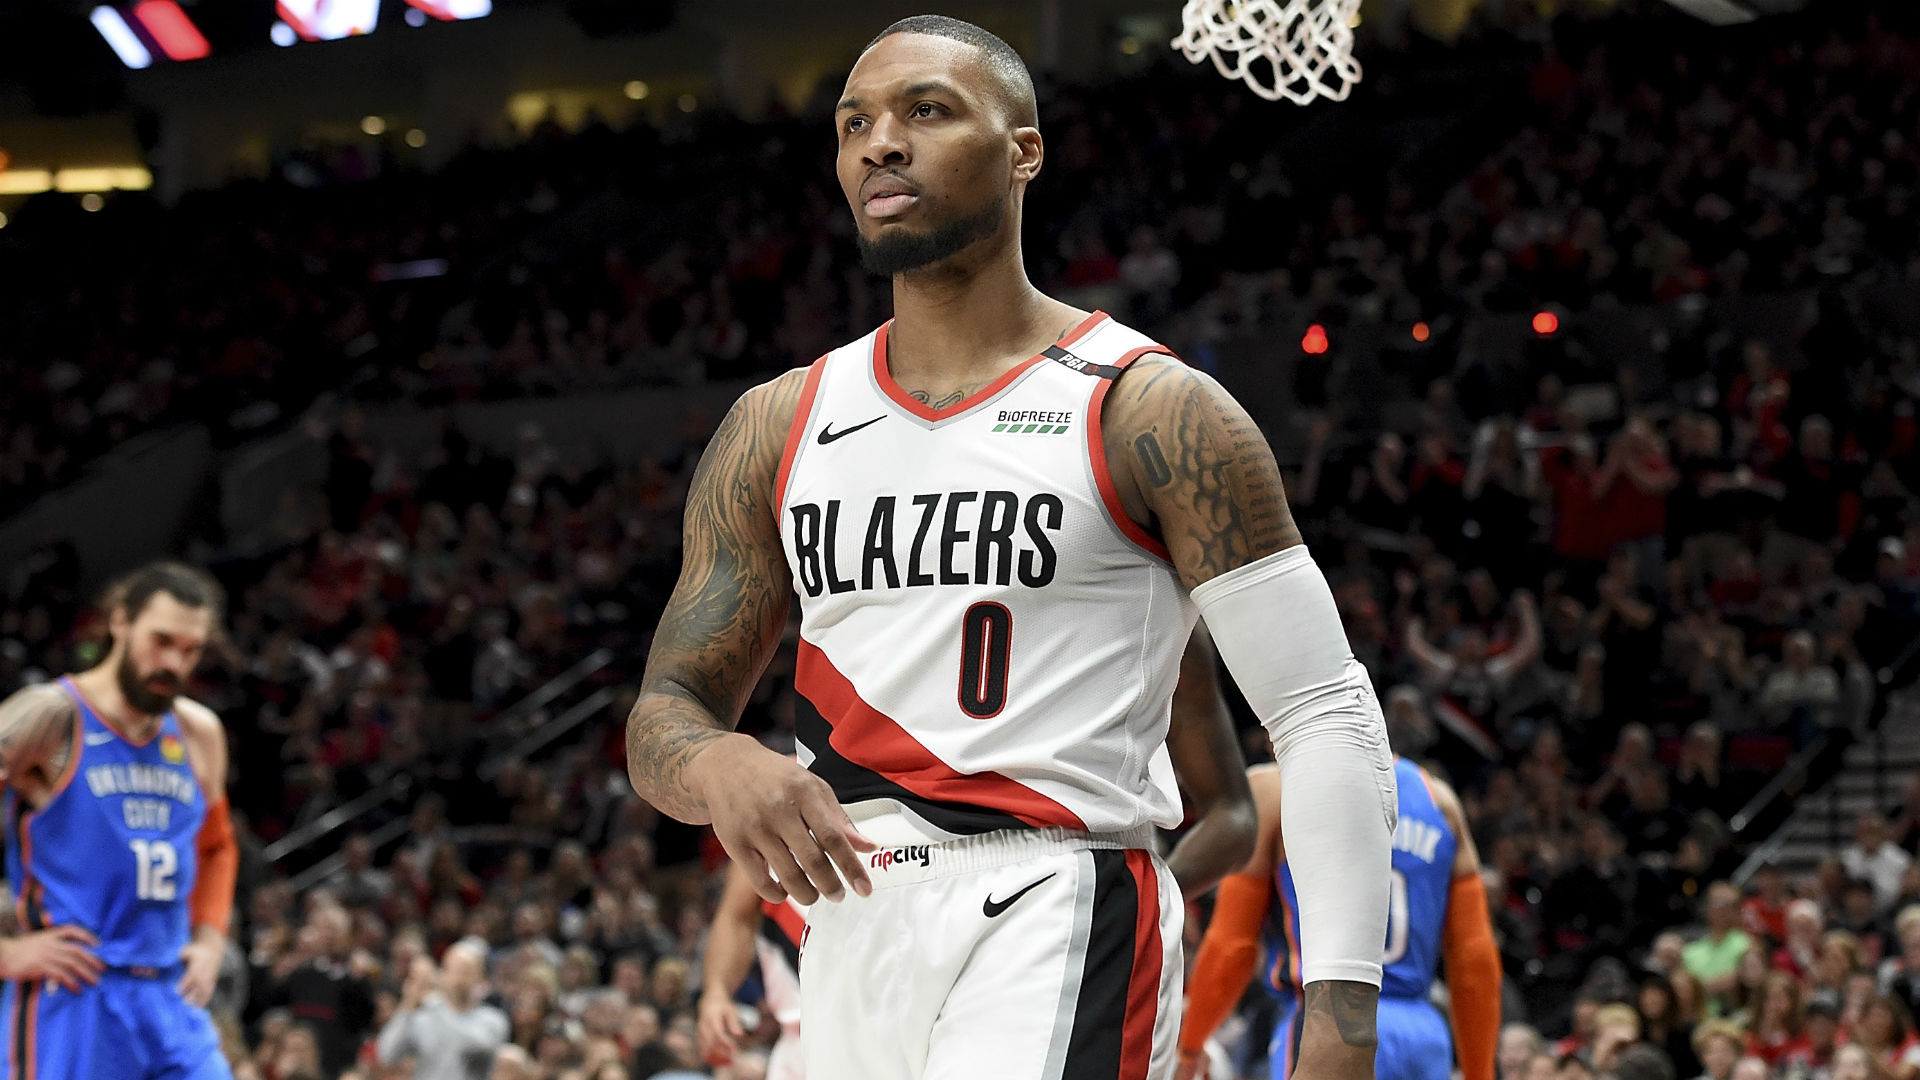 Nba Playoffs 2019 Damian Lillard Says It S Good To Get